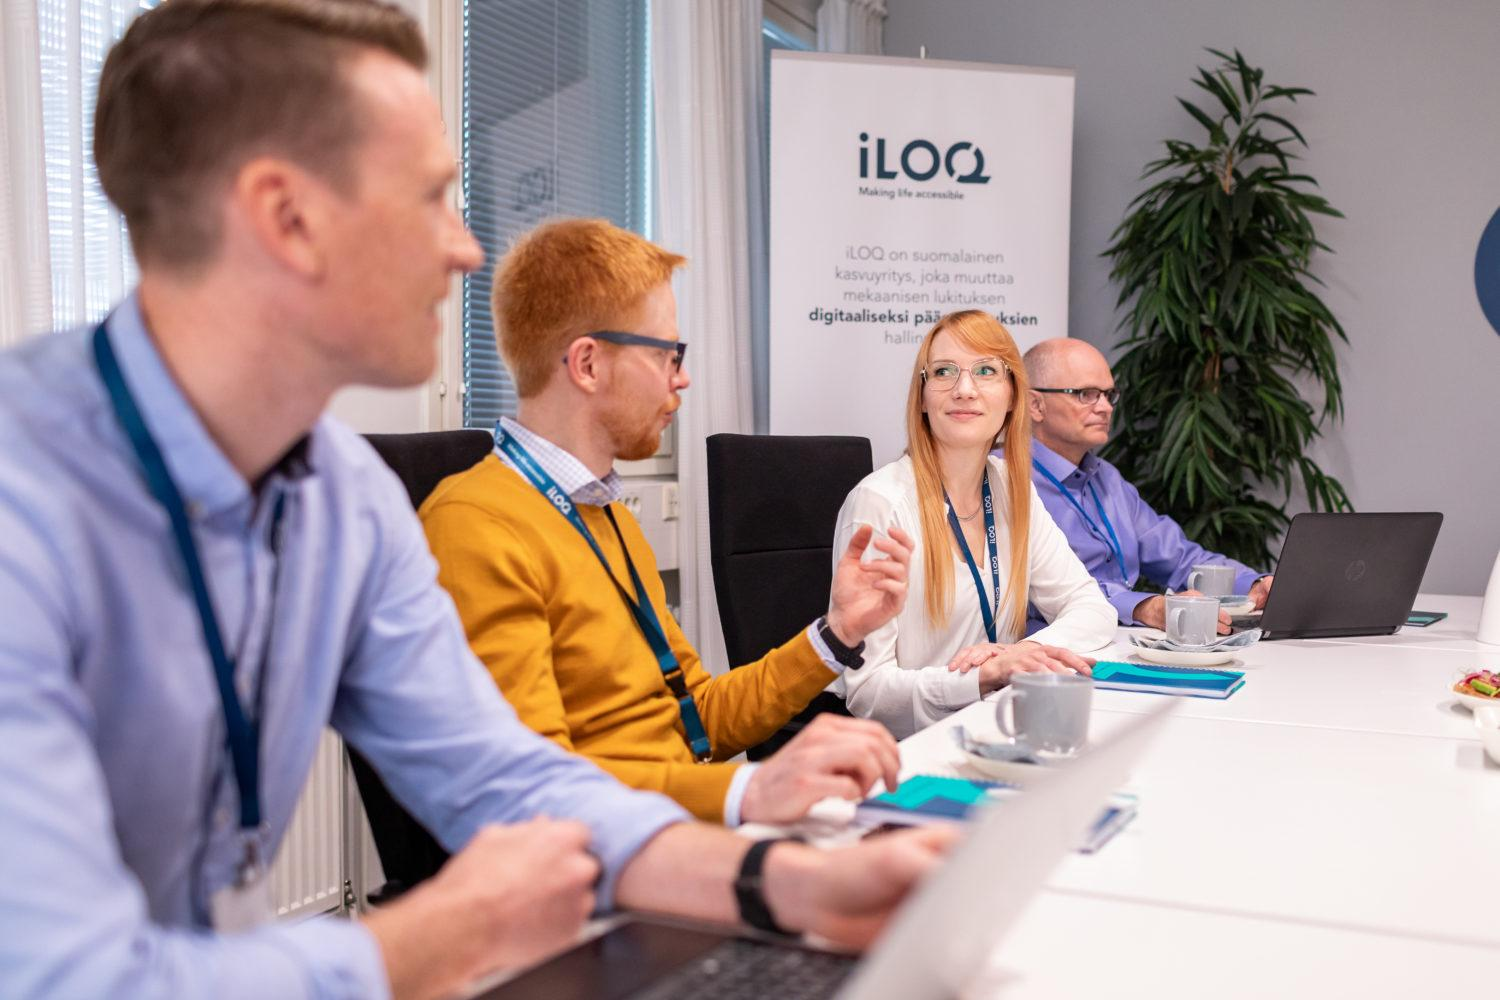 iLOQ employees in a meeting